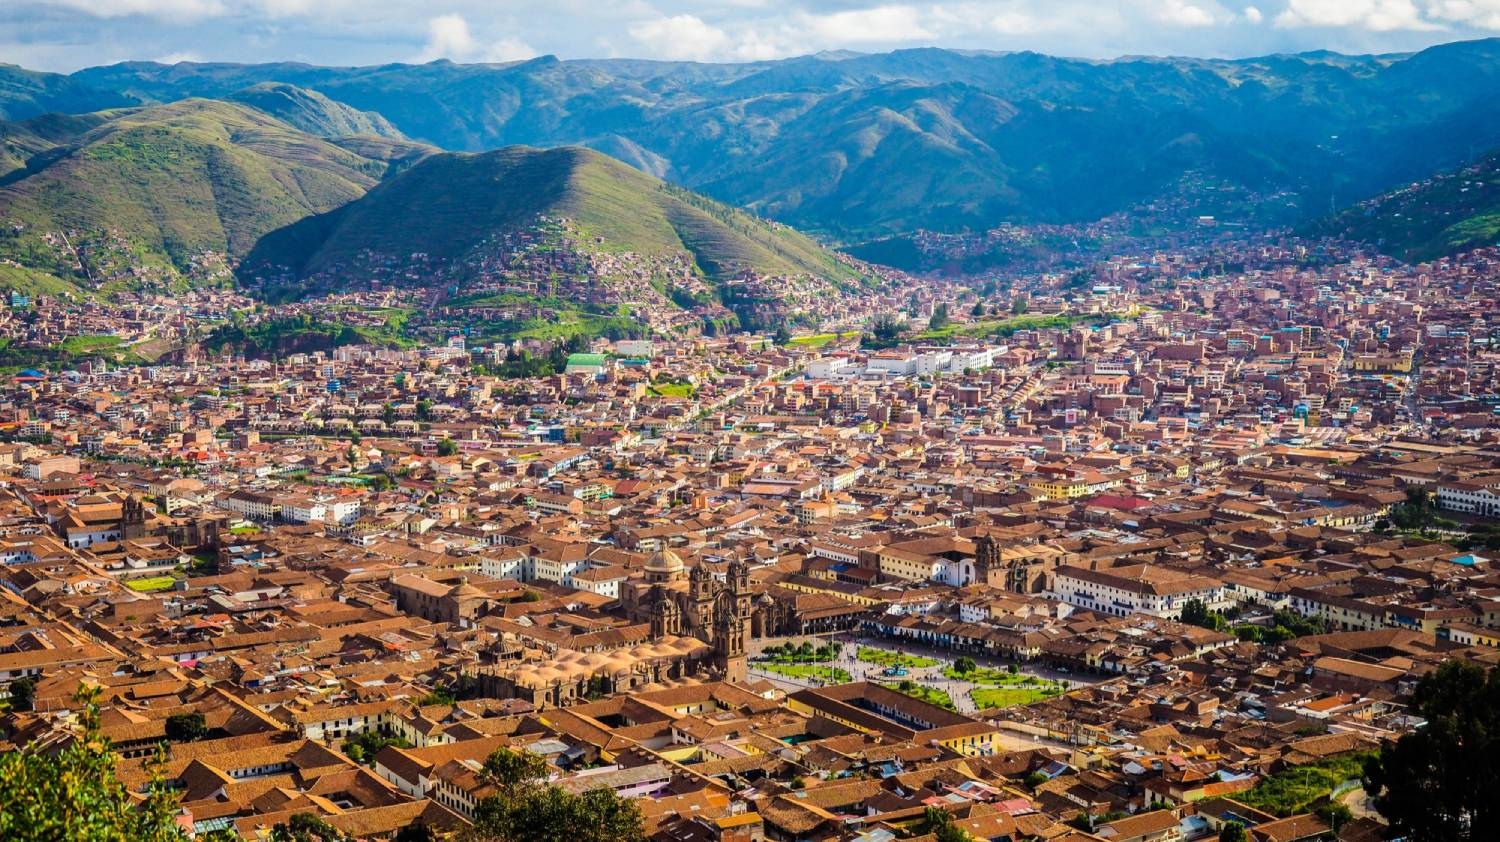 Cusco Historic Center - Things To Do In Cusco